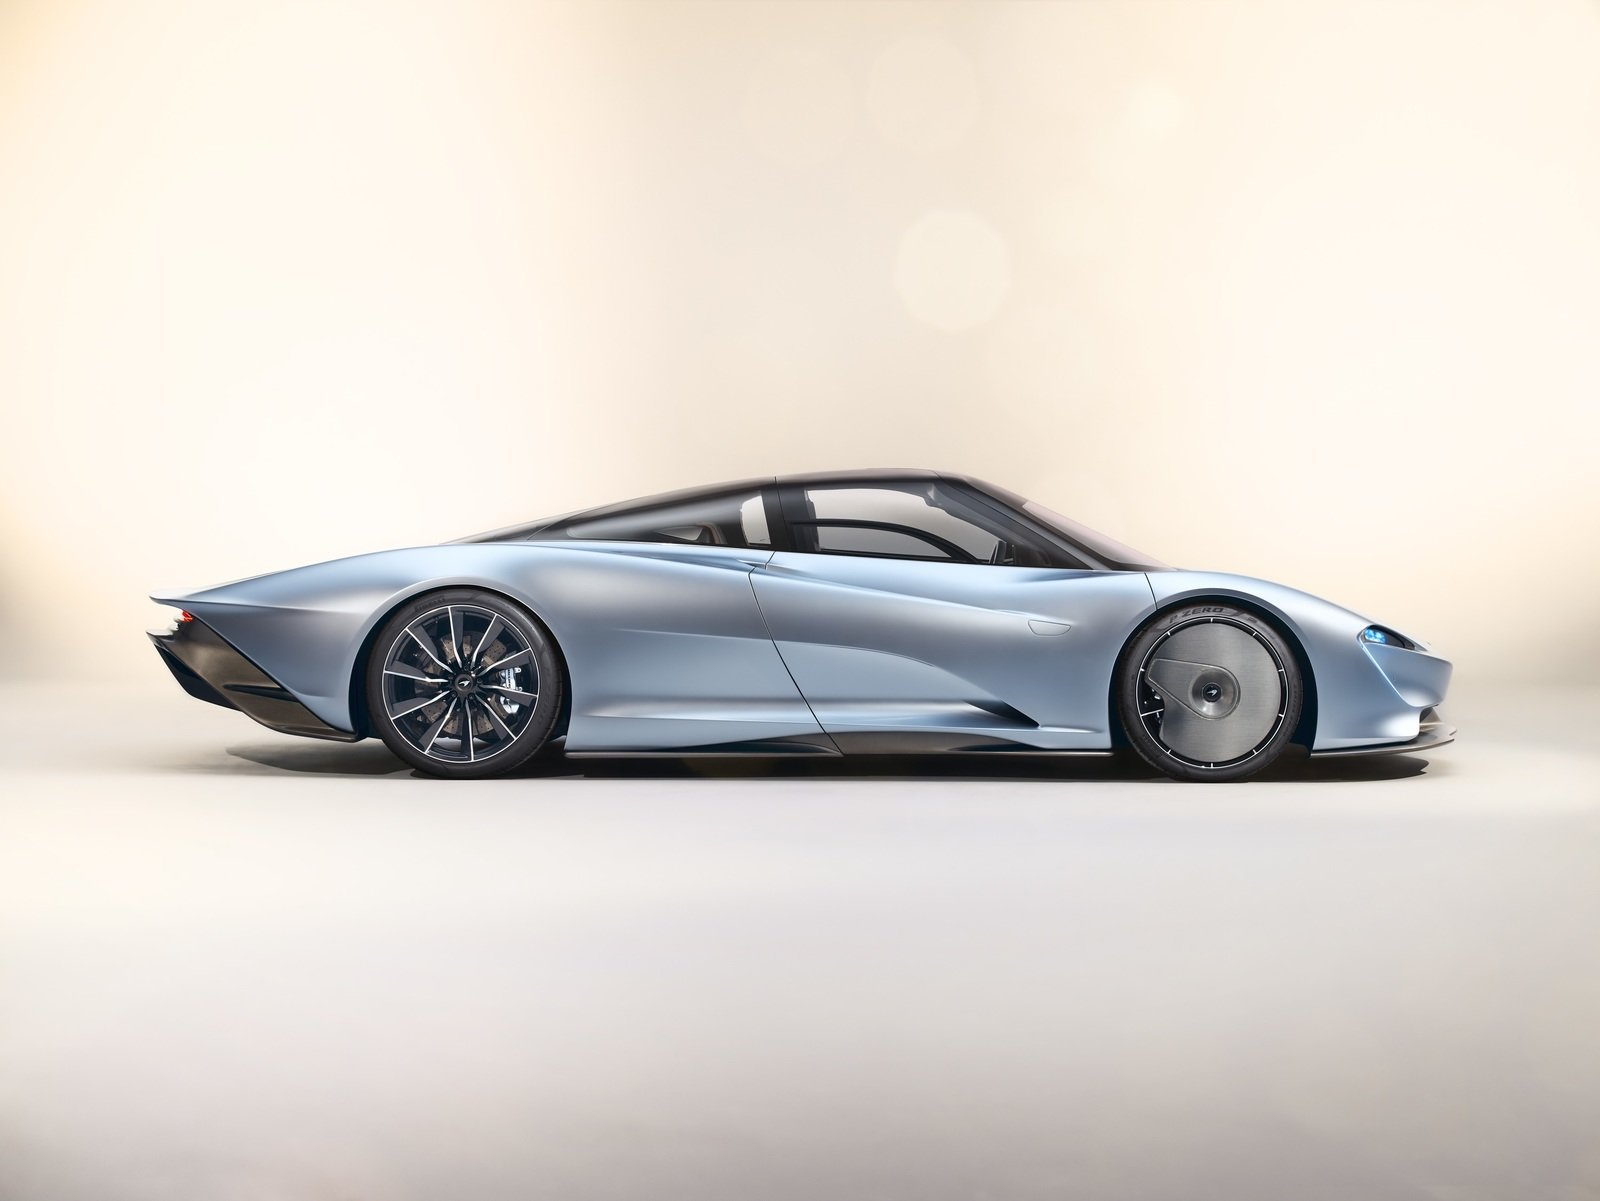 16 Astonishing Facts About The New McLaren Speedtail Hyper ...